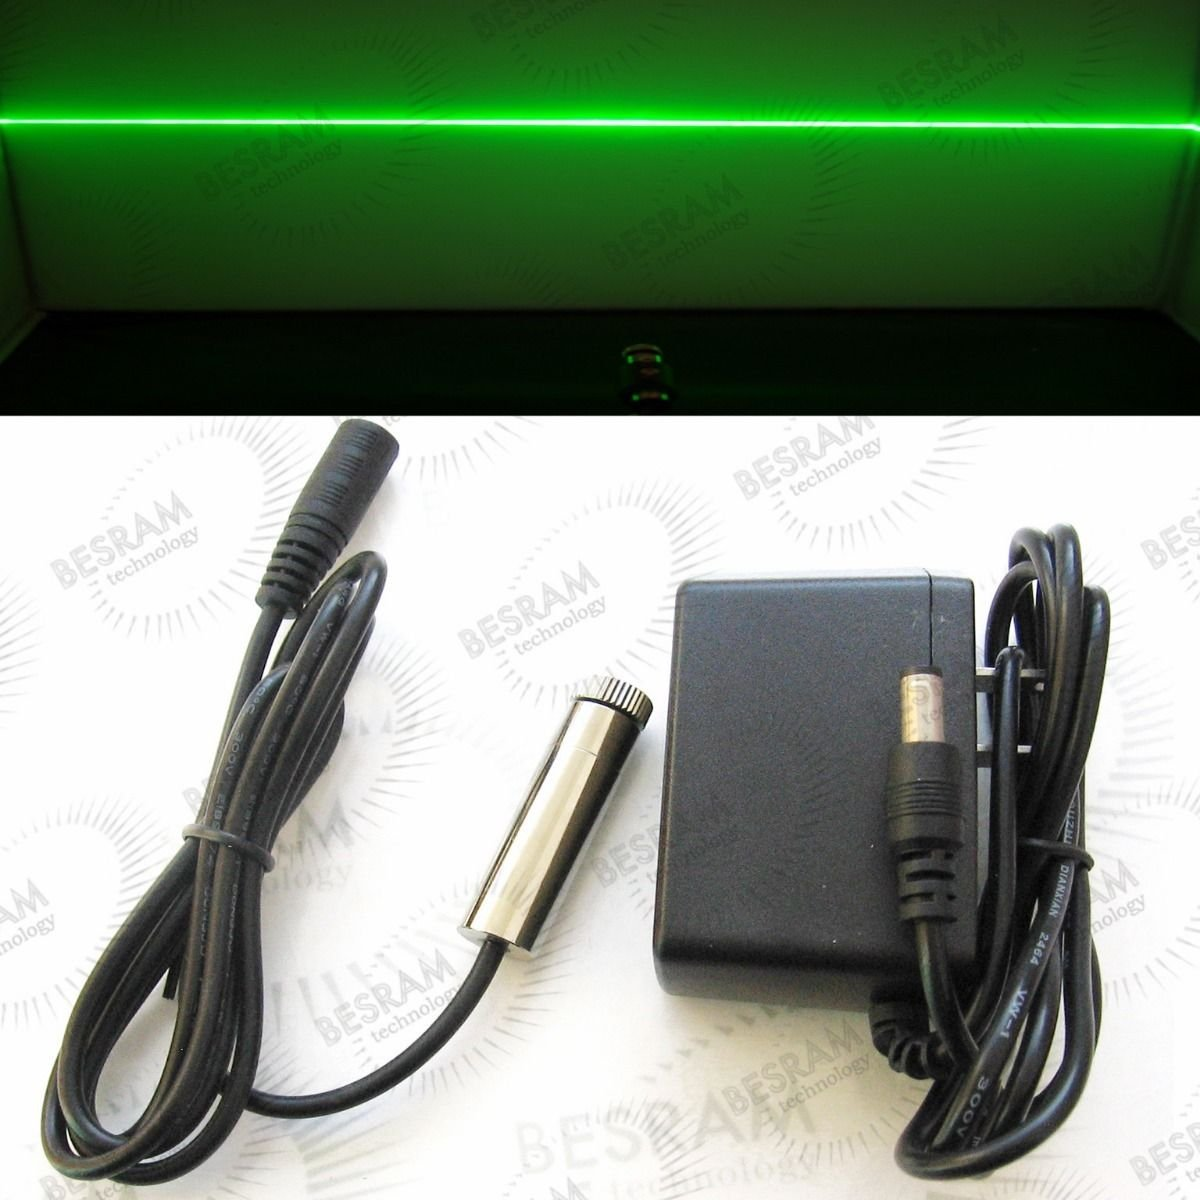 Focusable 120mw 520nm Green Laser LINE Diode Module w Adapter 12x45mm Osram LD